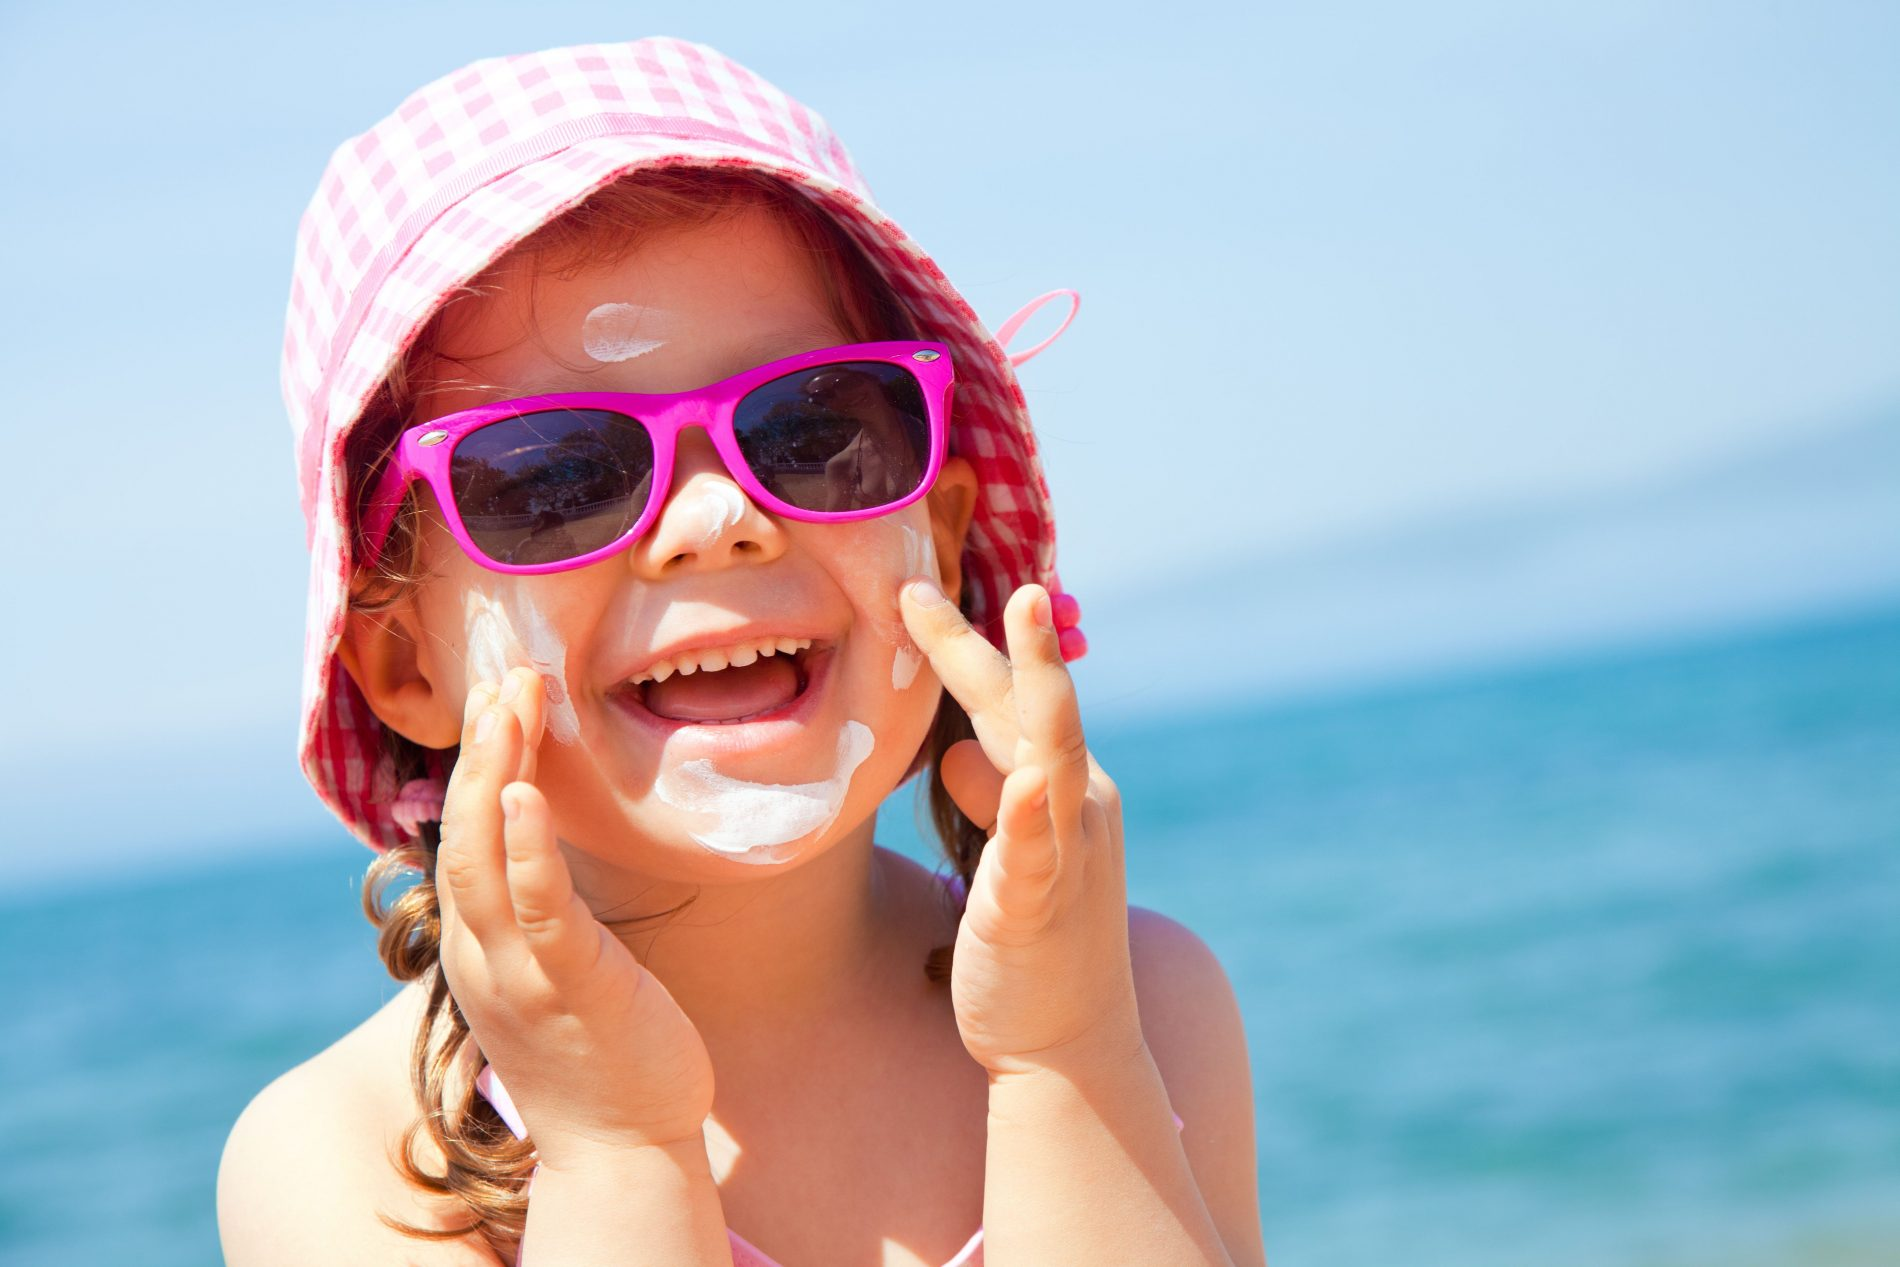 HOW TO KEEP YOUR CHILDREN SAFE IN THE SUN